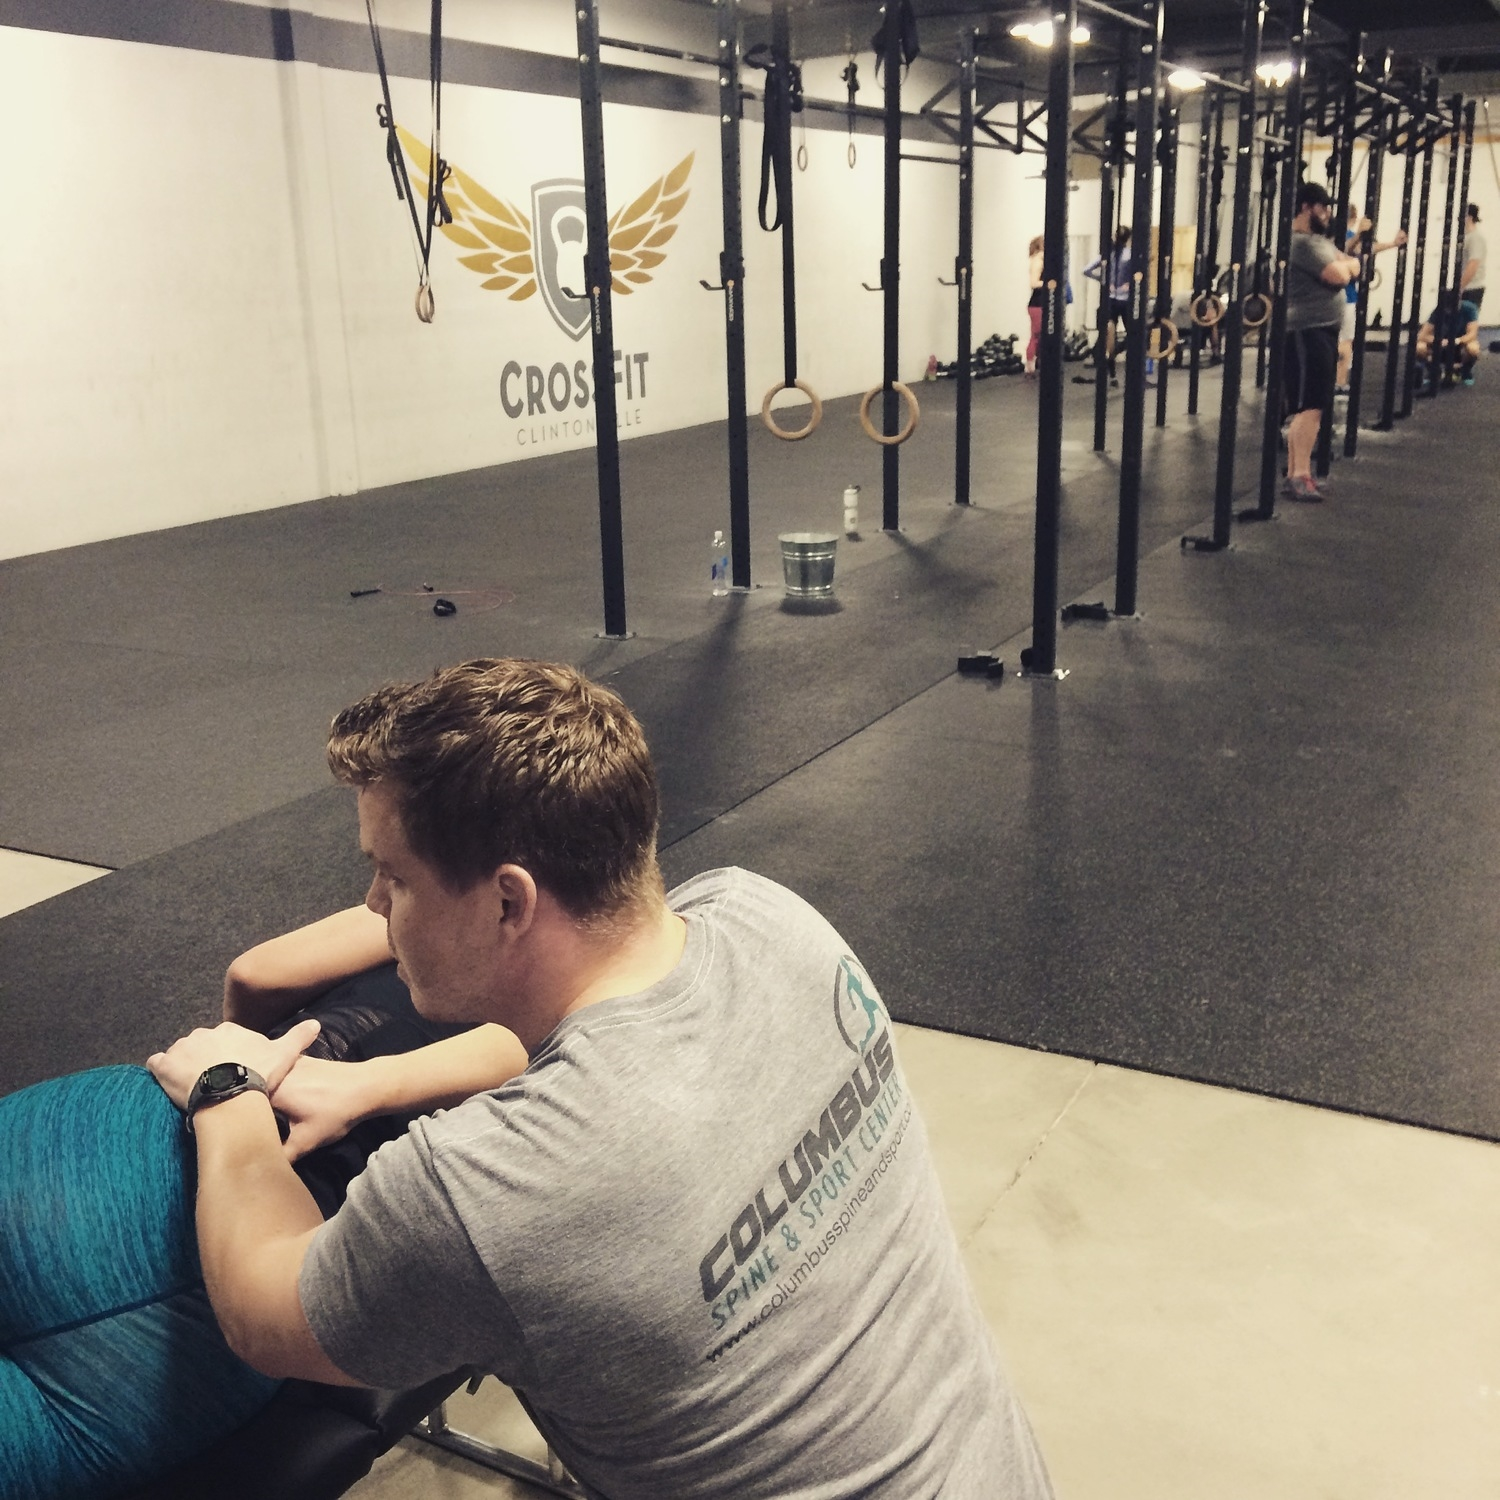 Saturday ART treatments at CrossFit Clintonville